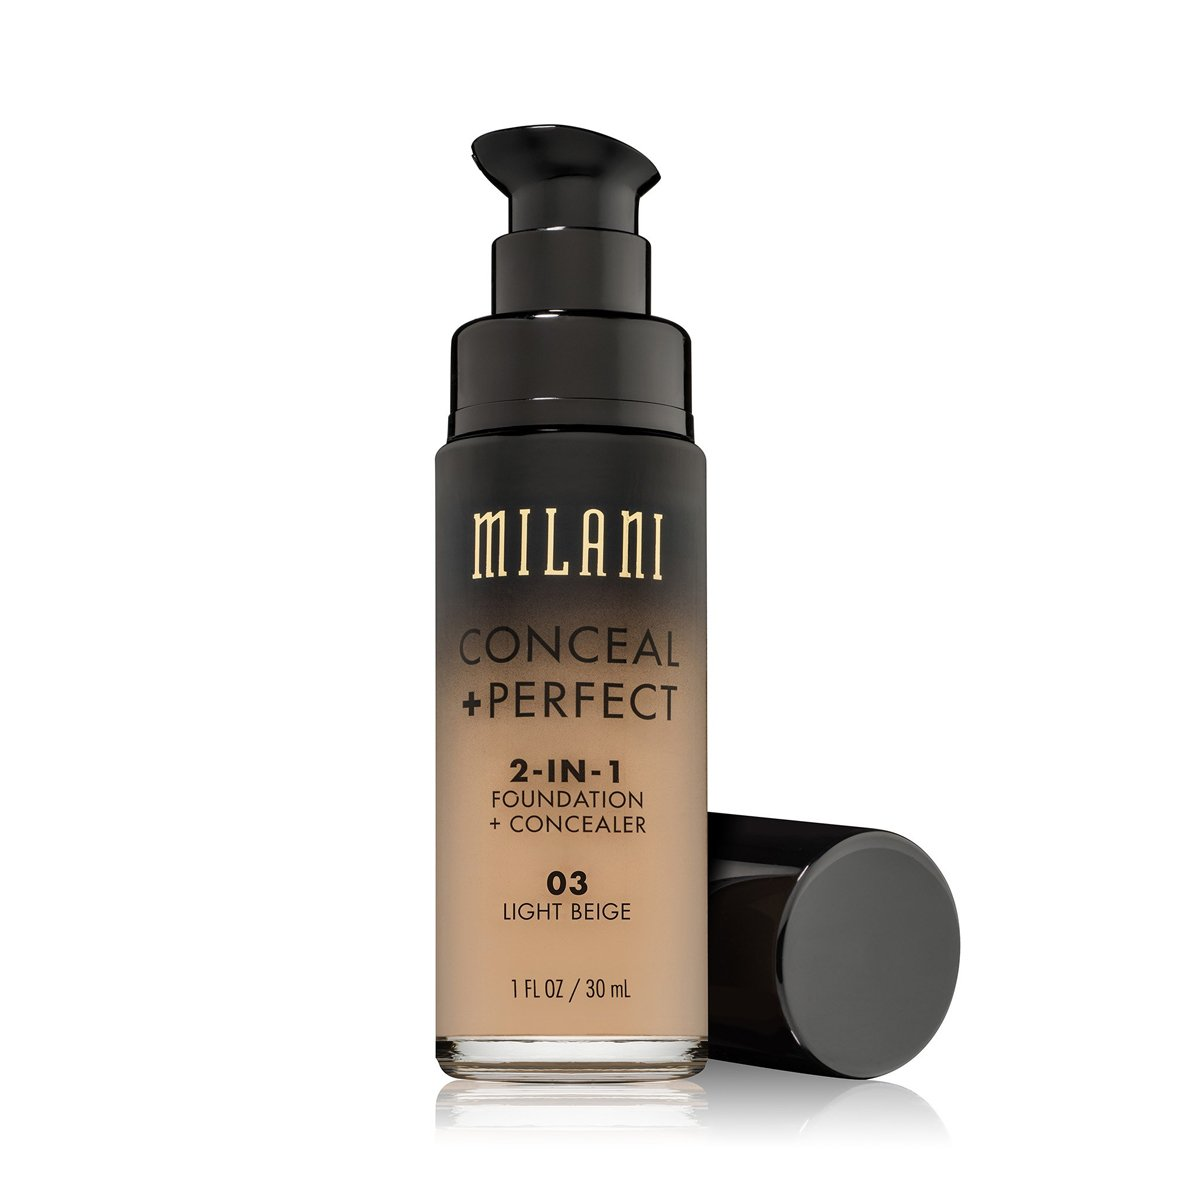 (3 Pack) MILANI Conceal + Perfect 2-In-1 Foundation + Concealer - Light Beige